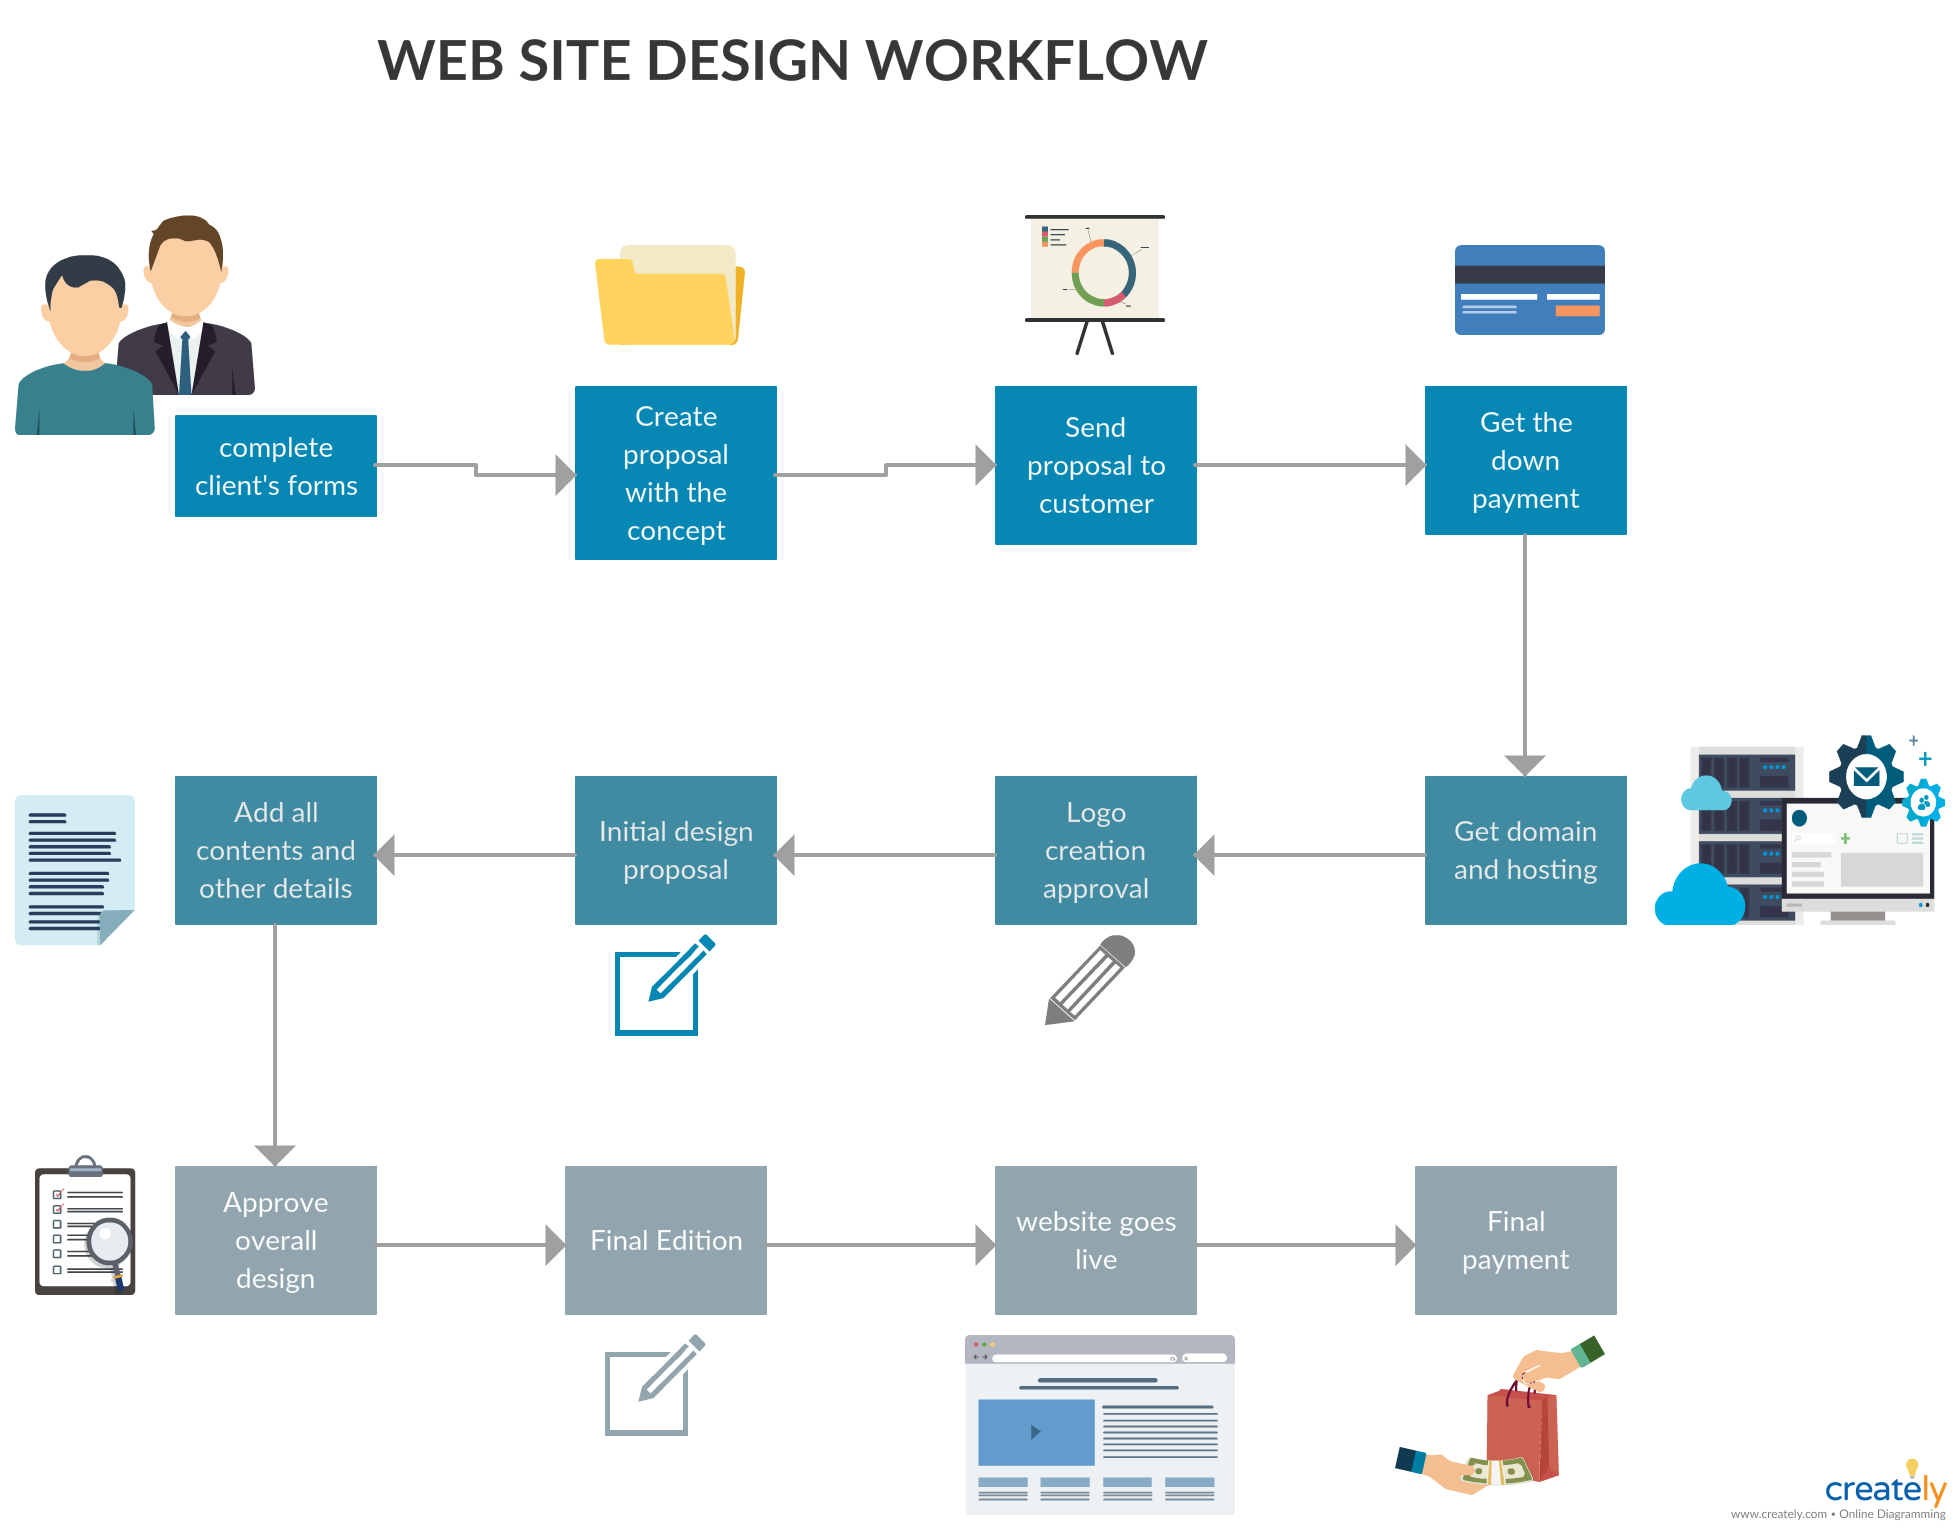 web site design workflow a workflow diagram for website designing this diagram shows the [ 1960 x 1530 Pixel ]